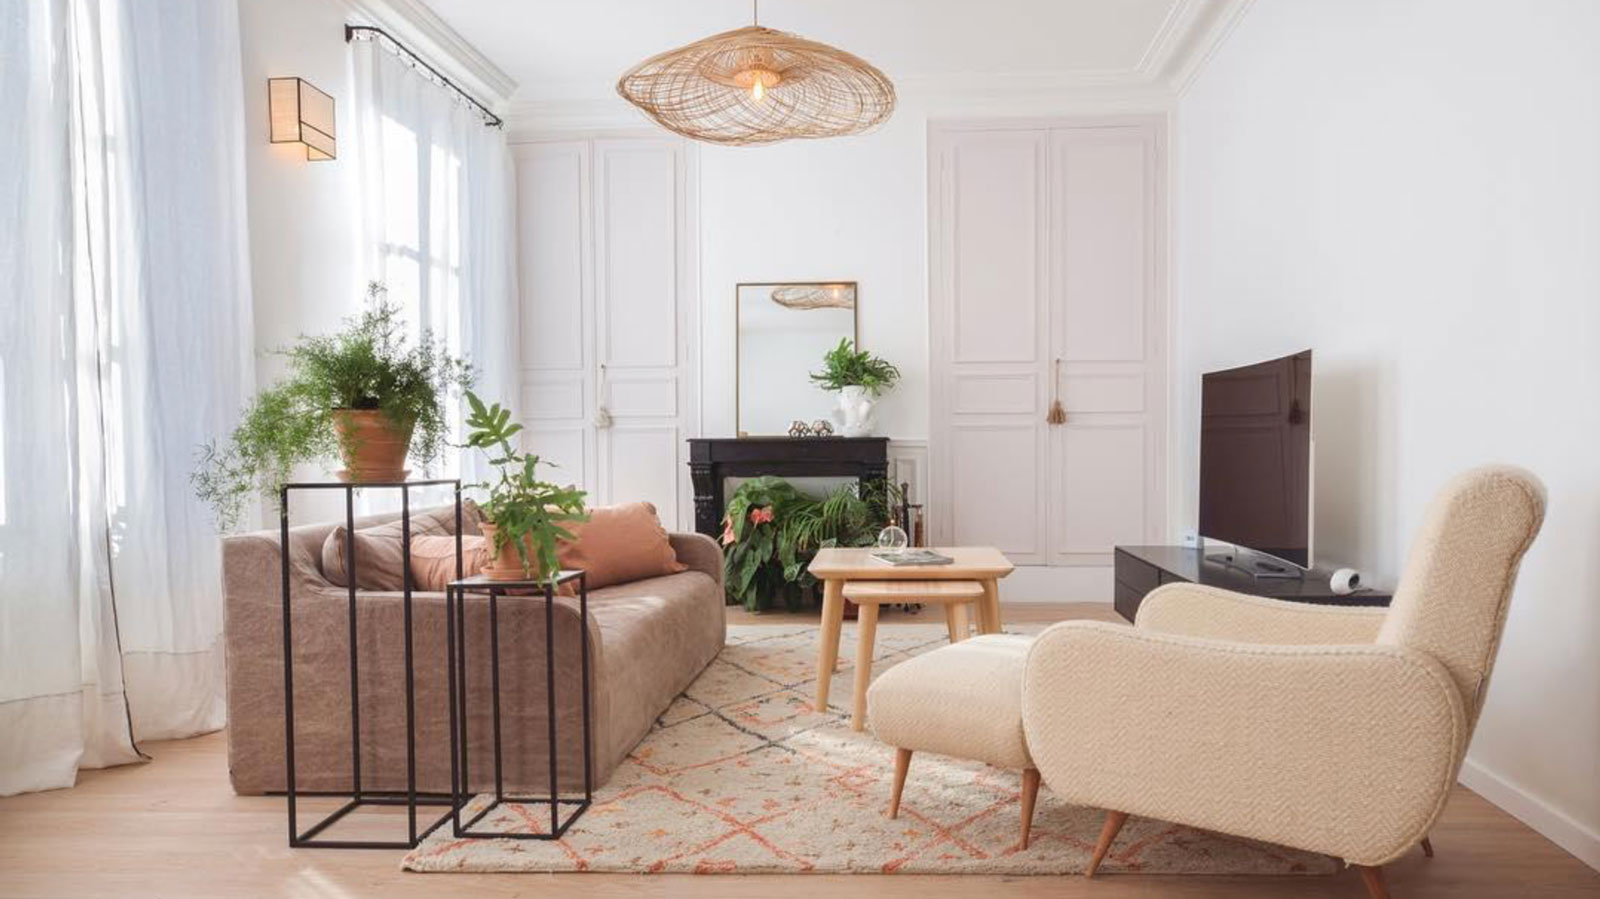 Cosy home ideas; creating a sanctuary